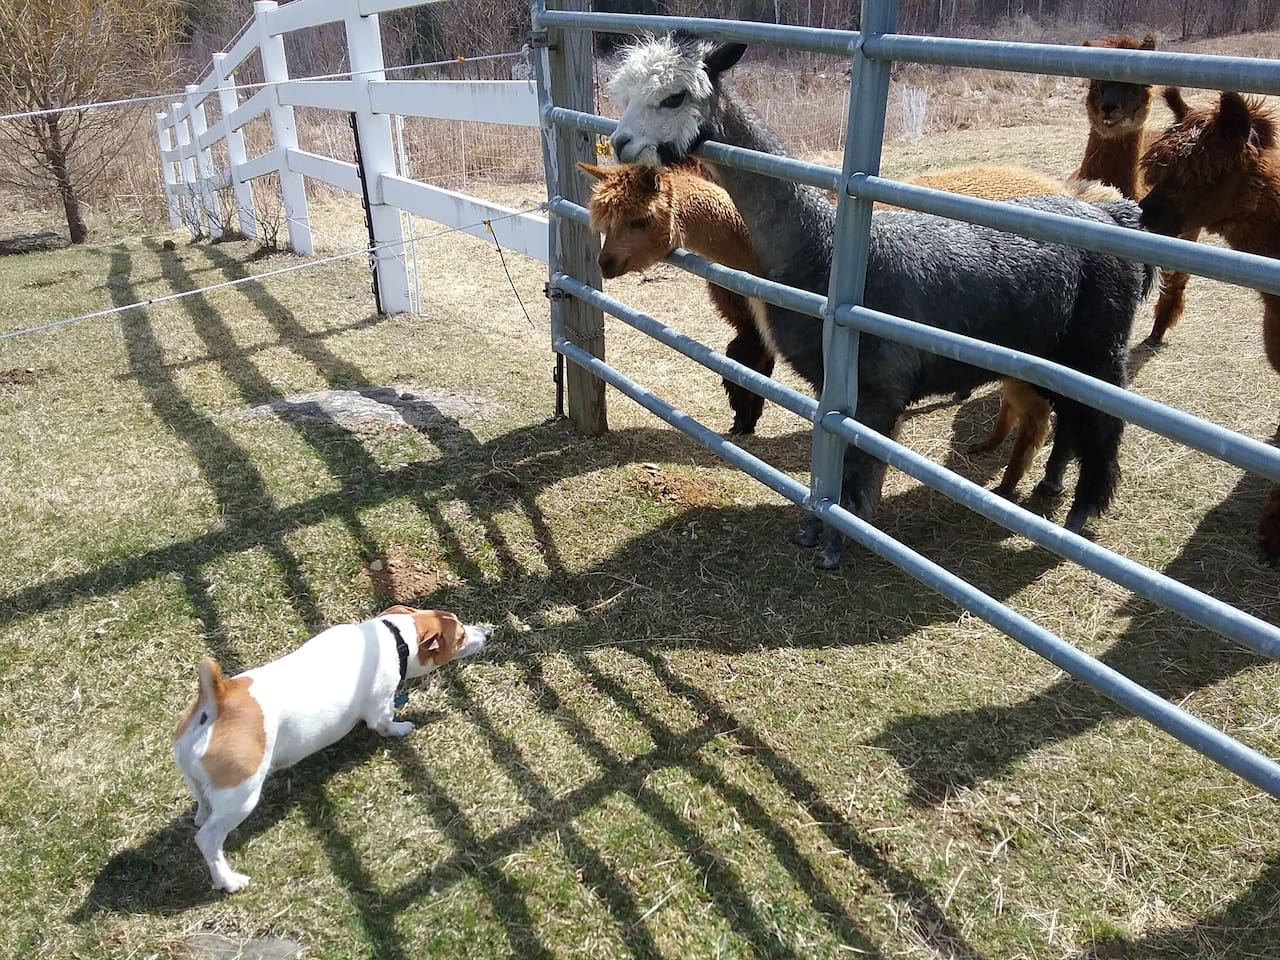 Alpacas, Domenic the dog, Cats and Chickens